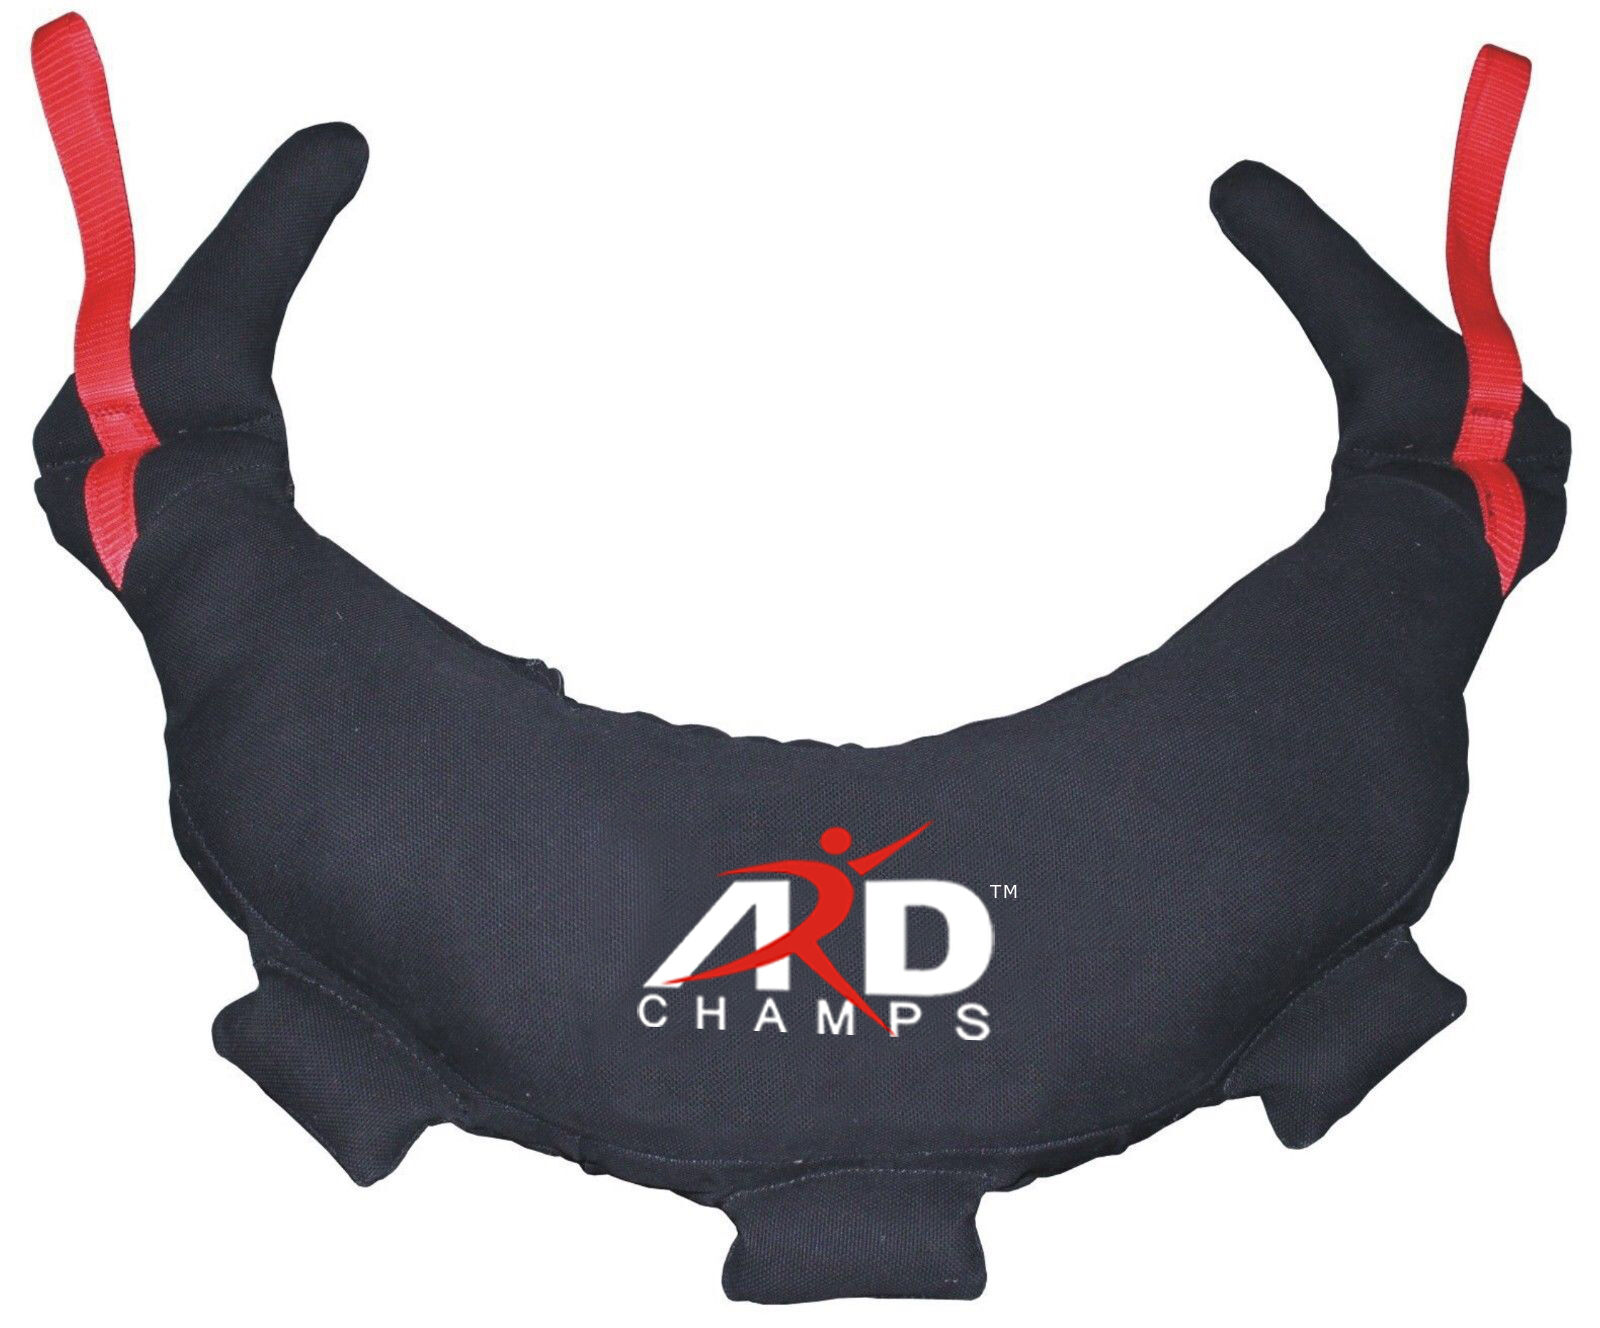 ARD CHAMPS™ FITNESS GYM  STRENGTHEN WORKOUT SAND BAG BULGARIAN 5 To 28 KG CANVAS